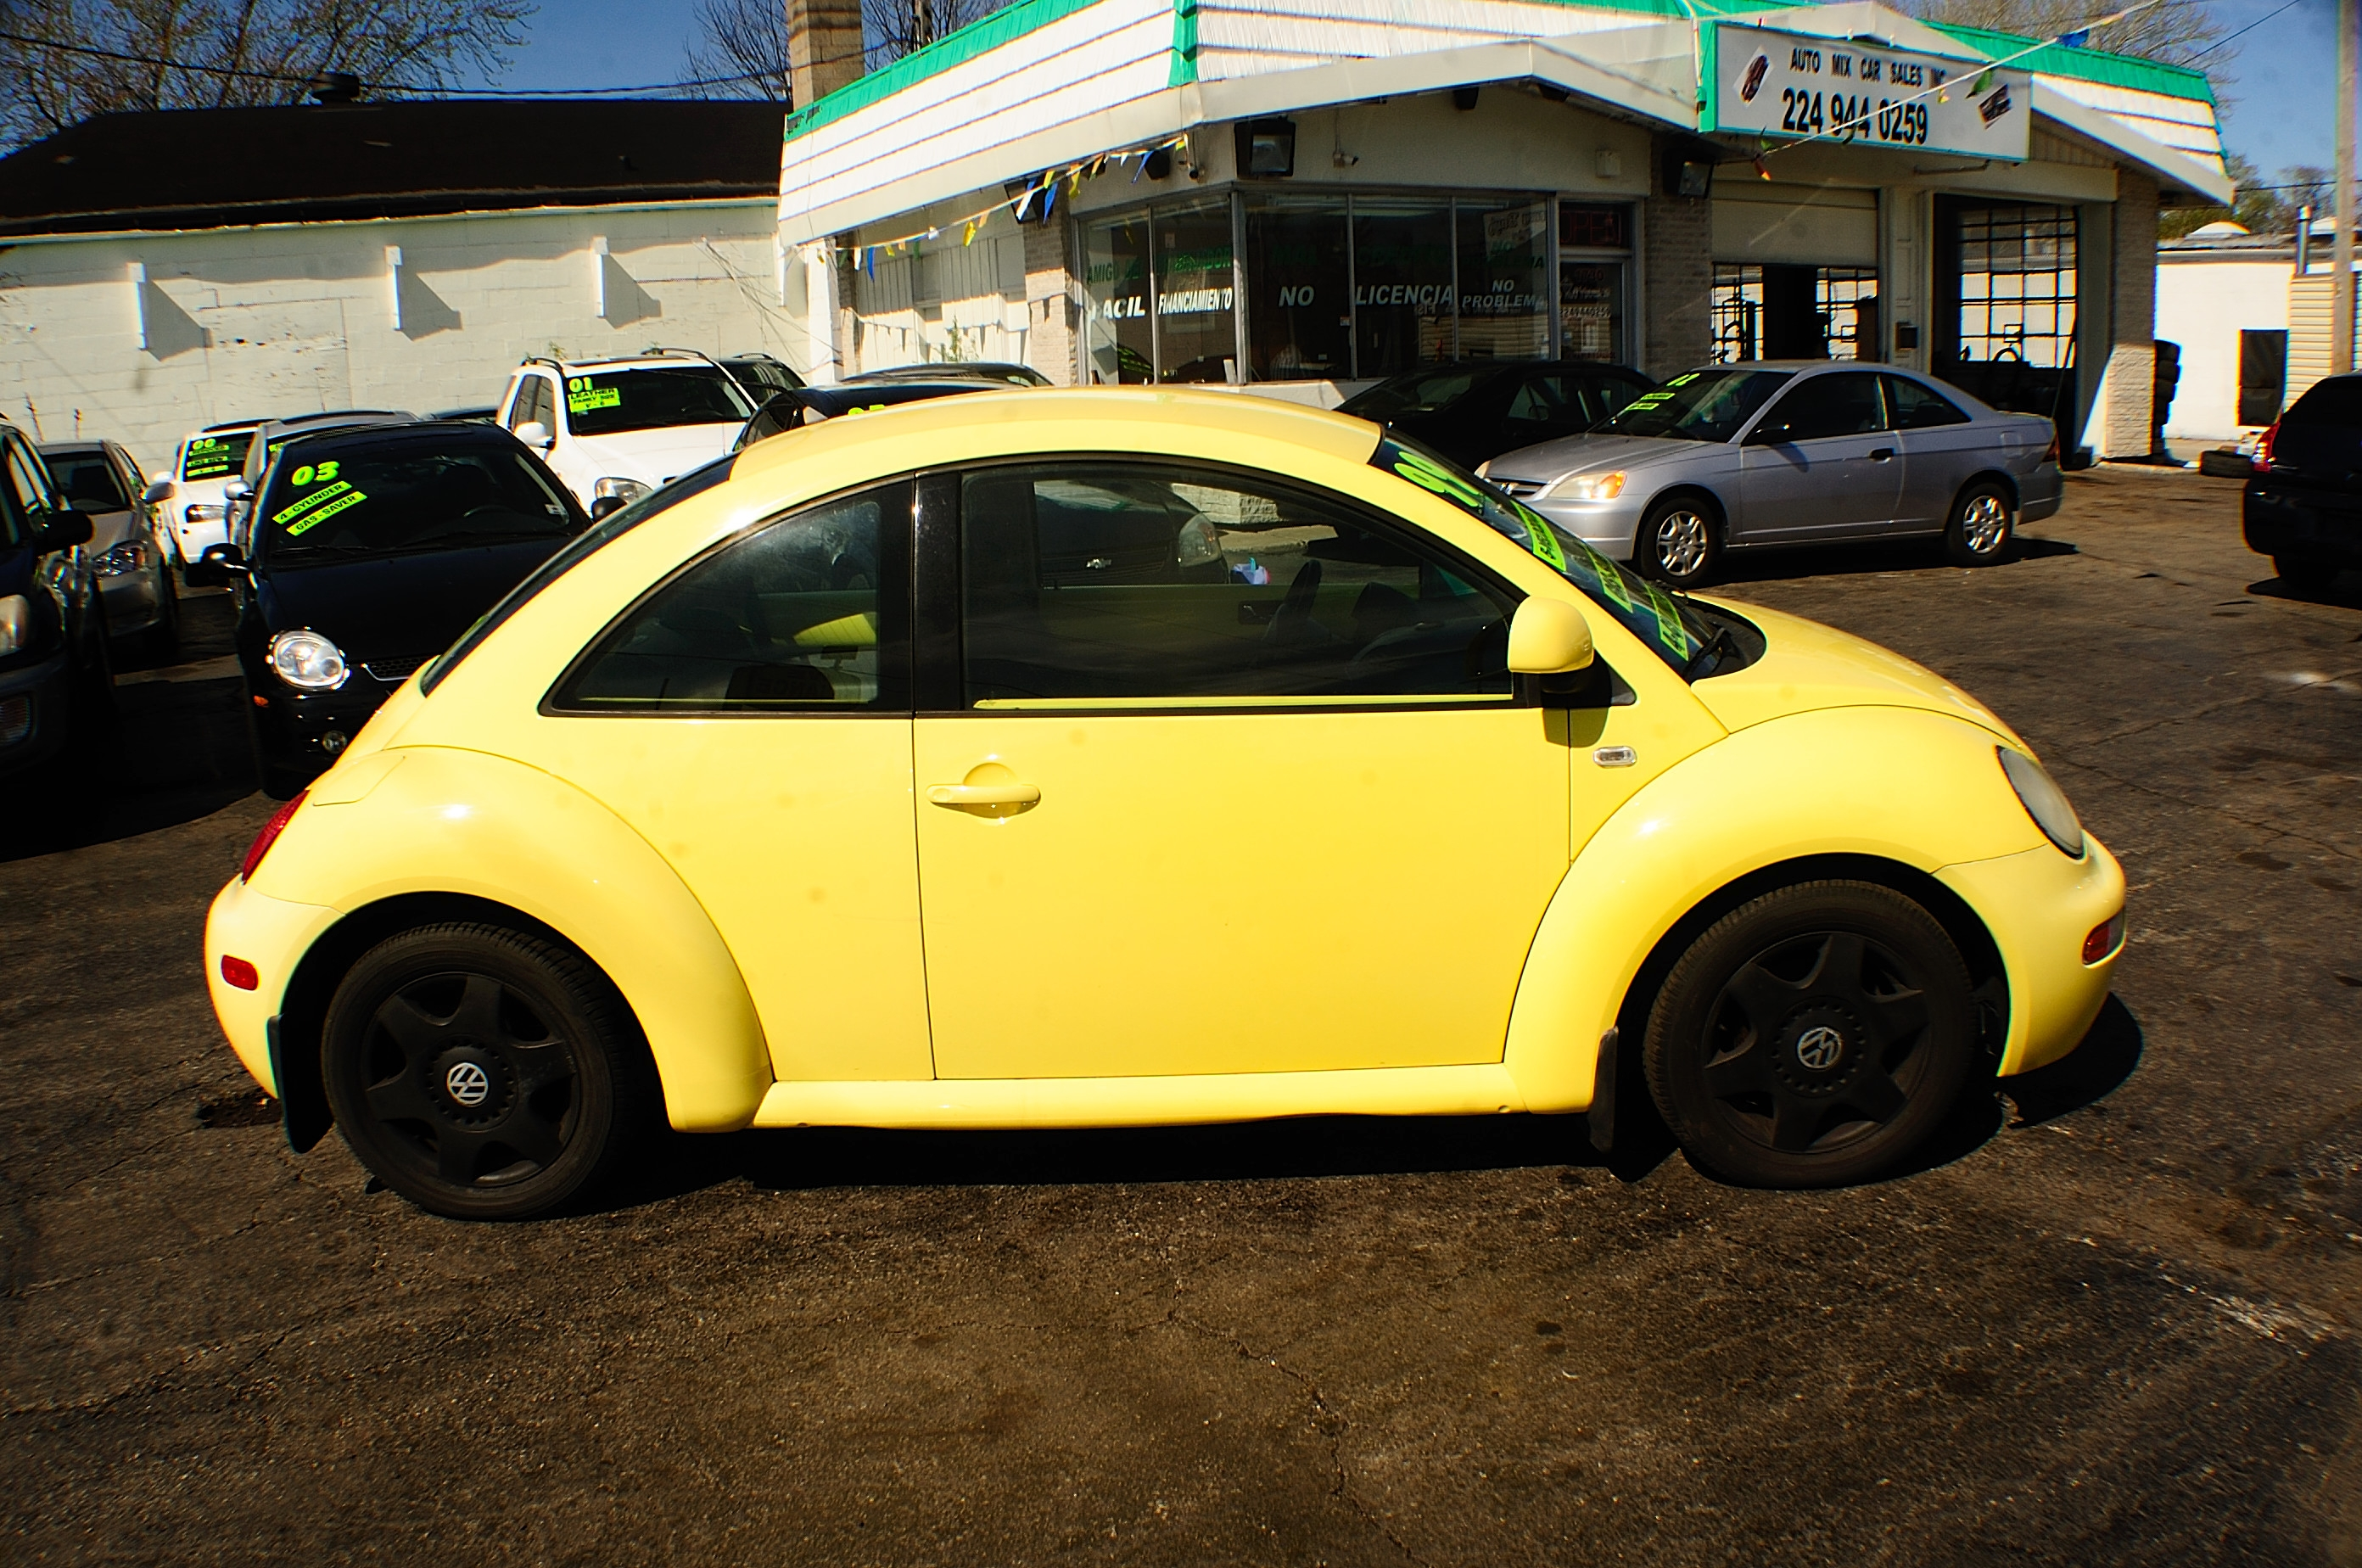 1999 volkswagen beetle yellow manual used car. Black Bedroom Furniture Sets. Home Design Ideas